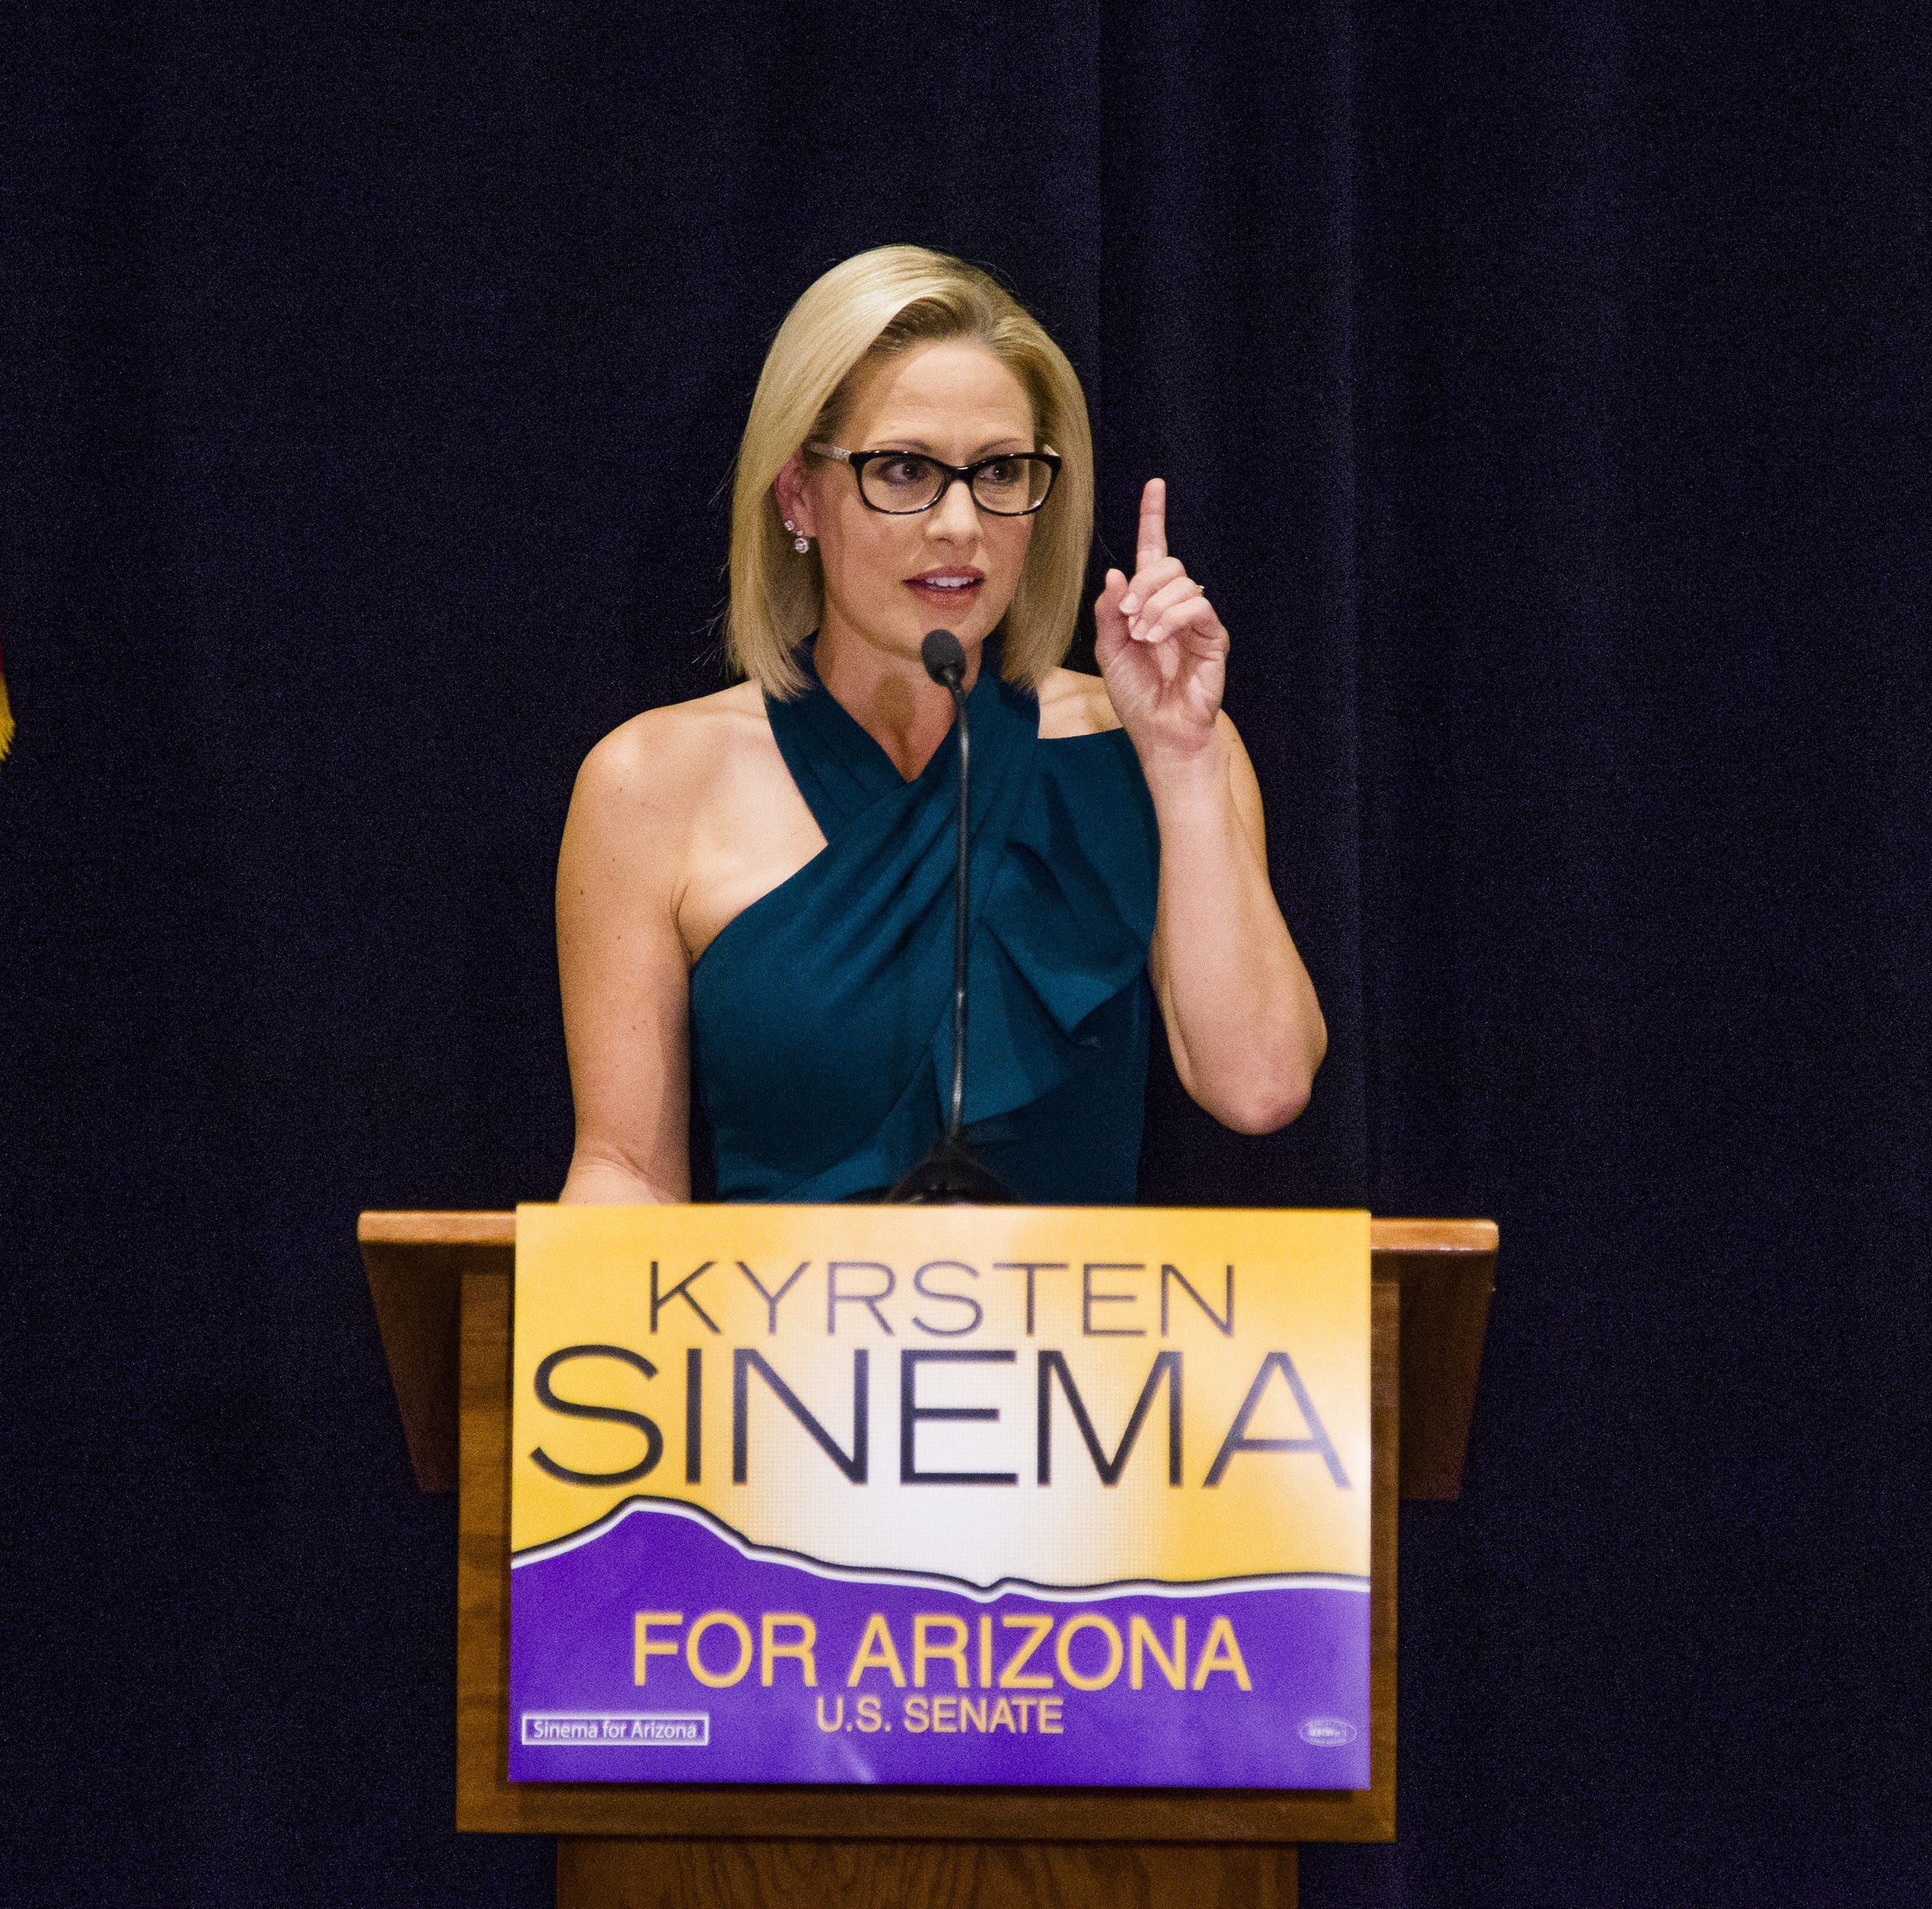 Kyrsten Sinema didn't just make history. She became a symbol of hope